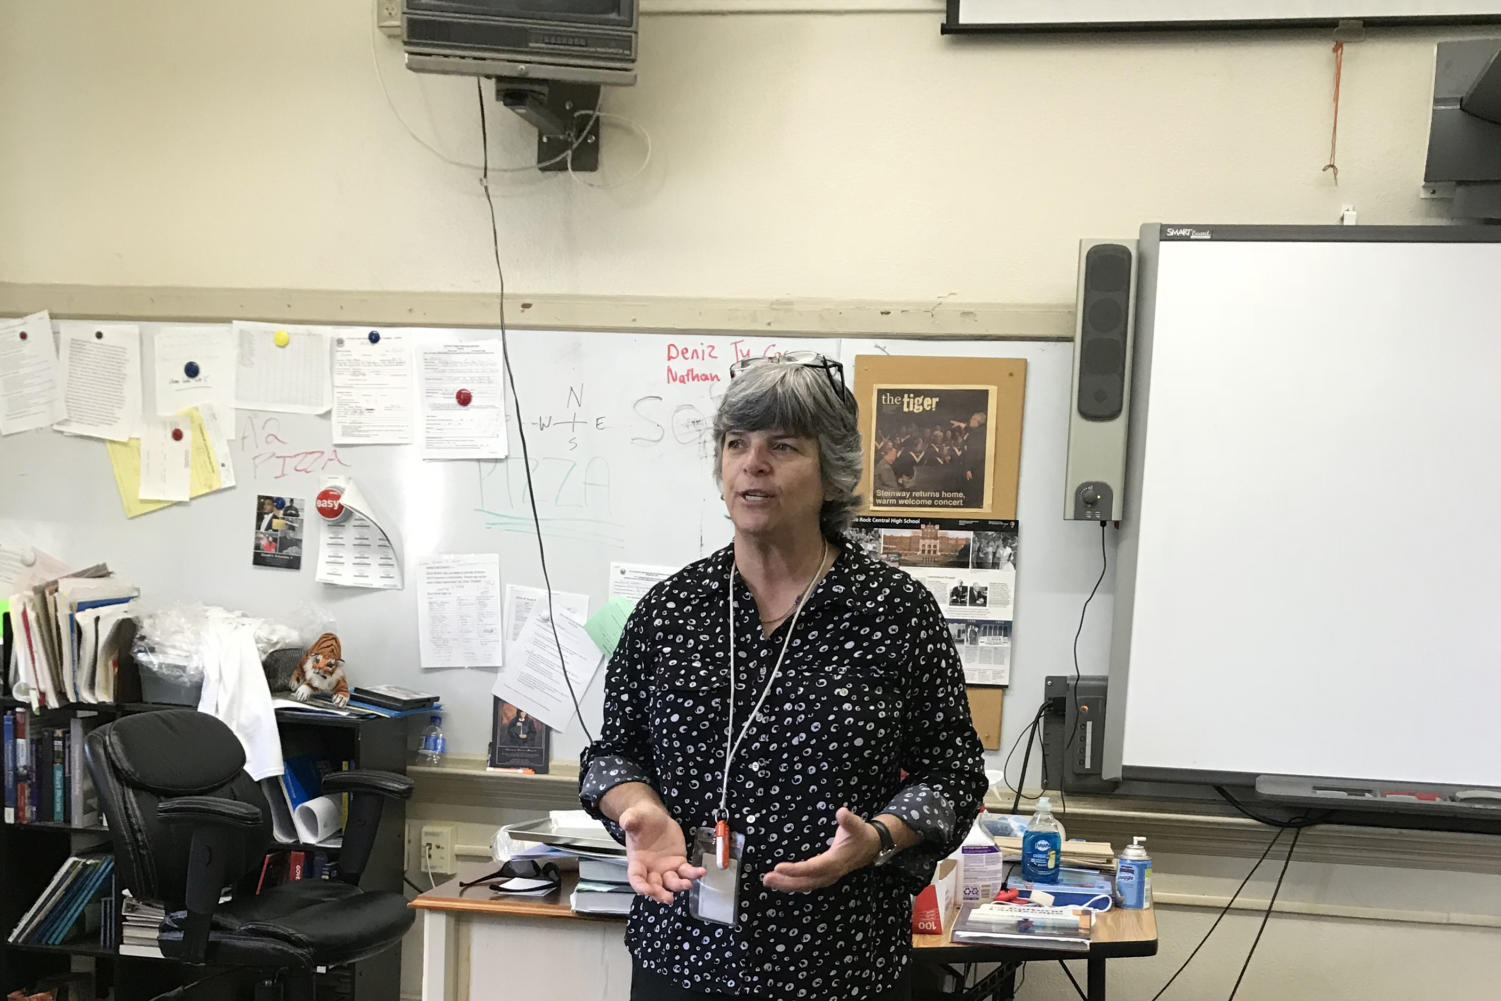 Judy Warren teaches lesson on popular and folk culture through videos showing clothes and music over time. (photo by Salma Abdulrahman)